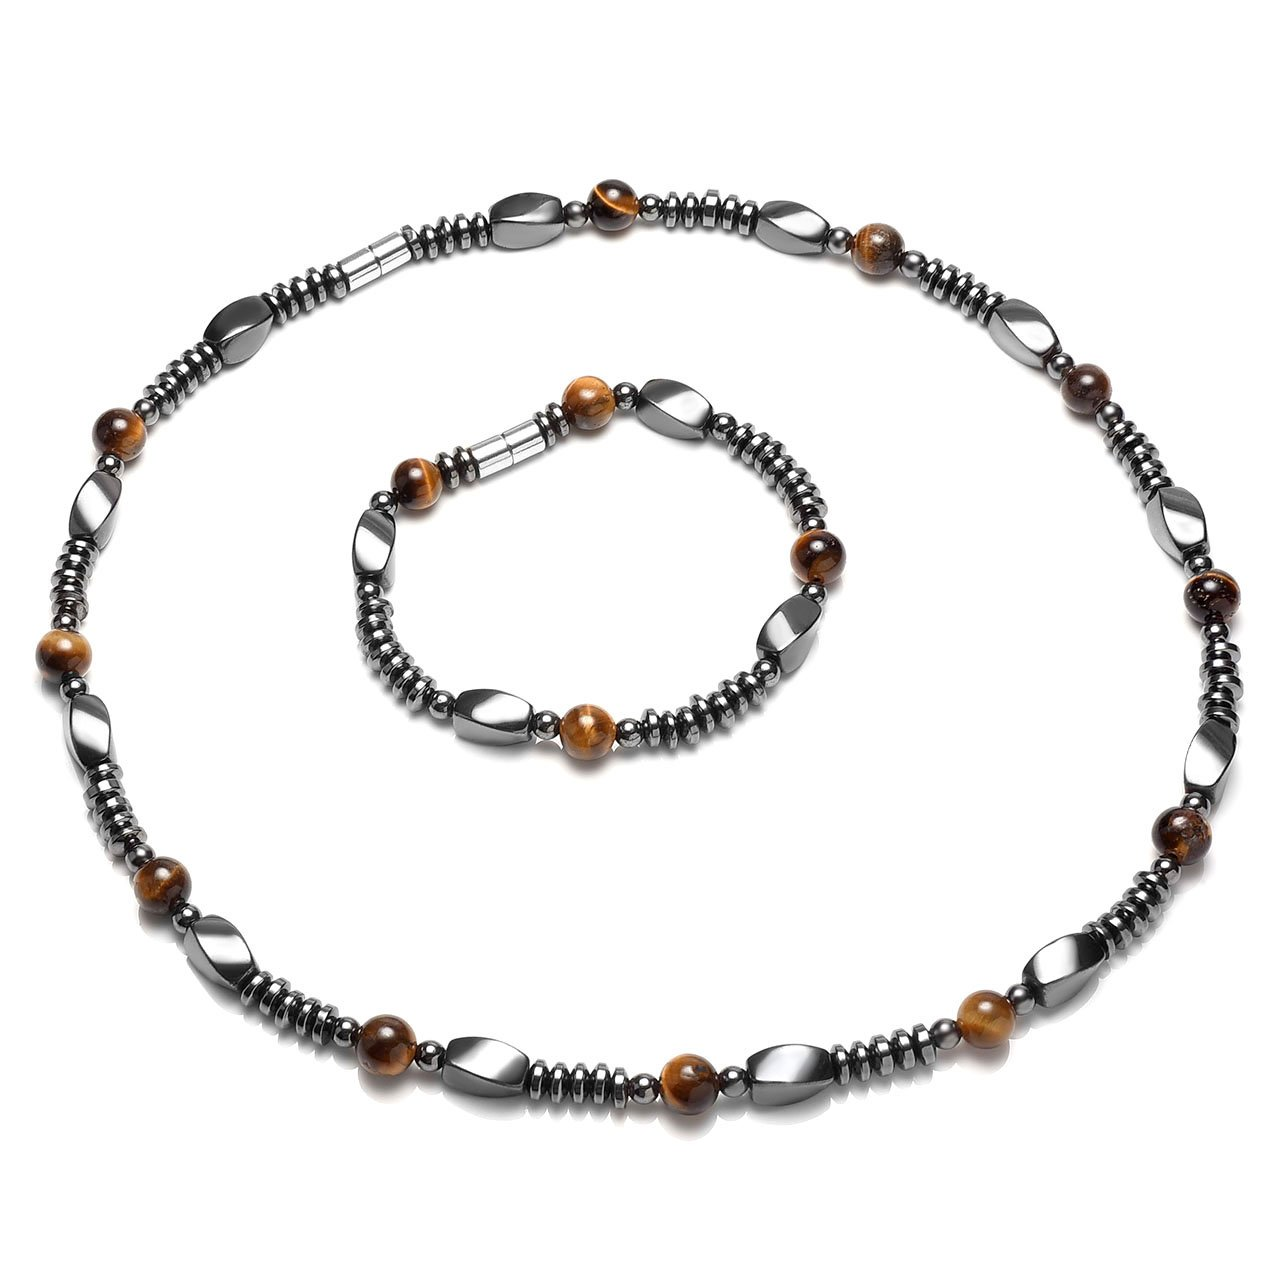 Top Plaza Men's Womens Healing Tiger Eye Stones Hematite Magnetic Beads Unadjustable Clasp Therapy Bracelet Necklace Set for Pain Anxiety Relief,Fathers Day Gifts #1